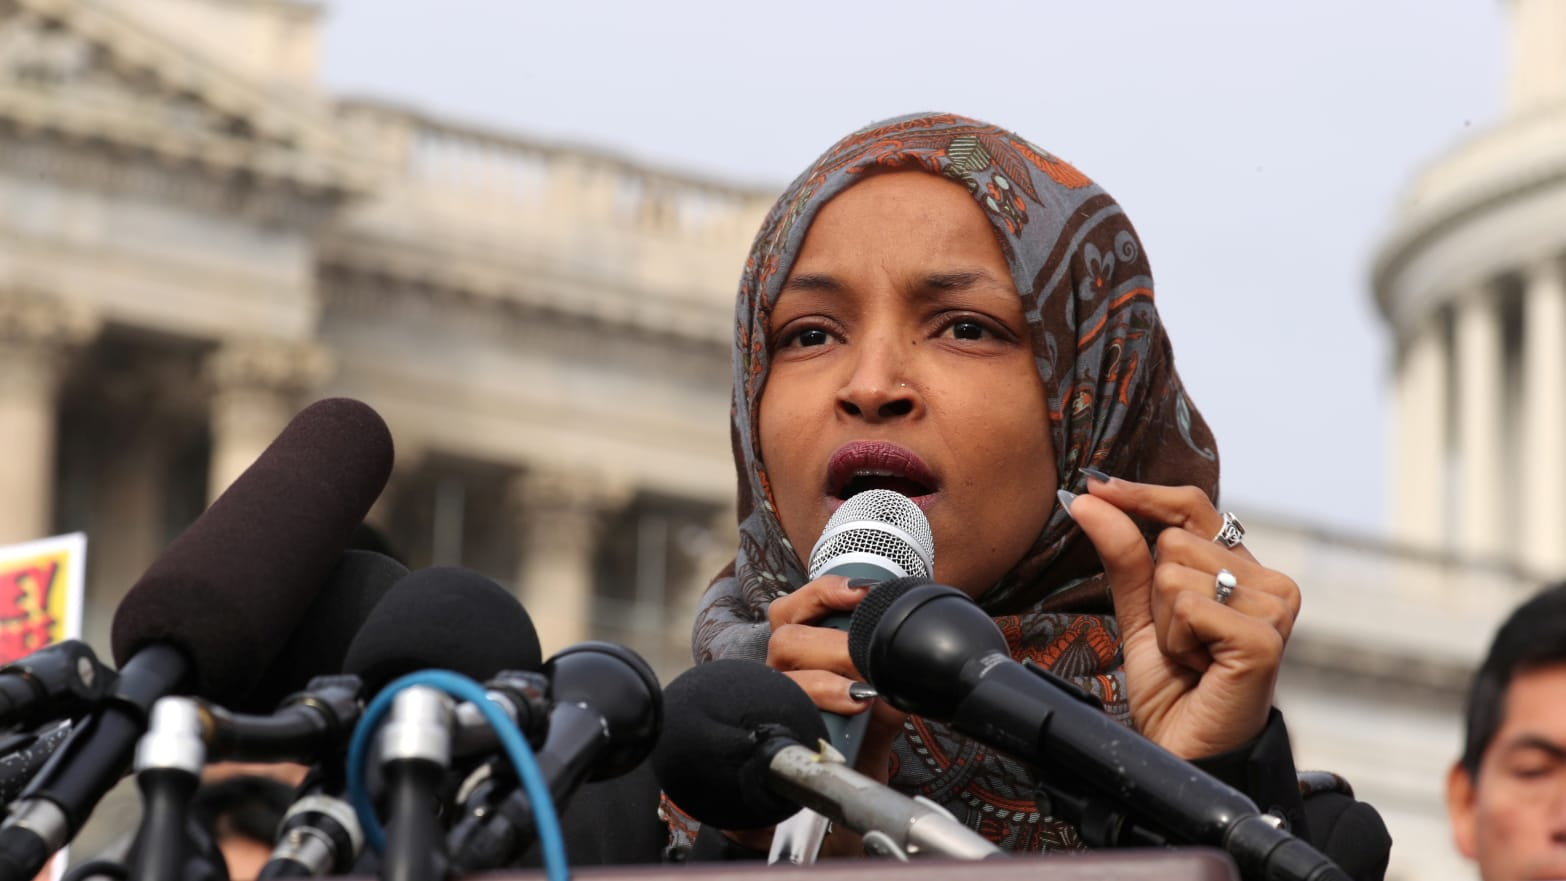 Fox News, Crenshaw, RNC Attack Ilhan Omar for 9/11 Comments